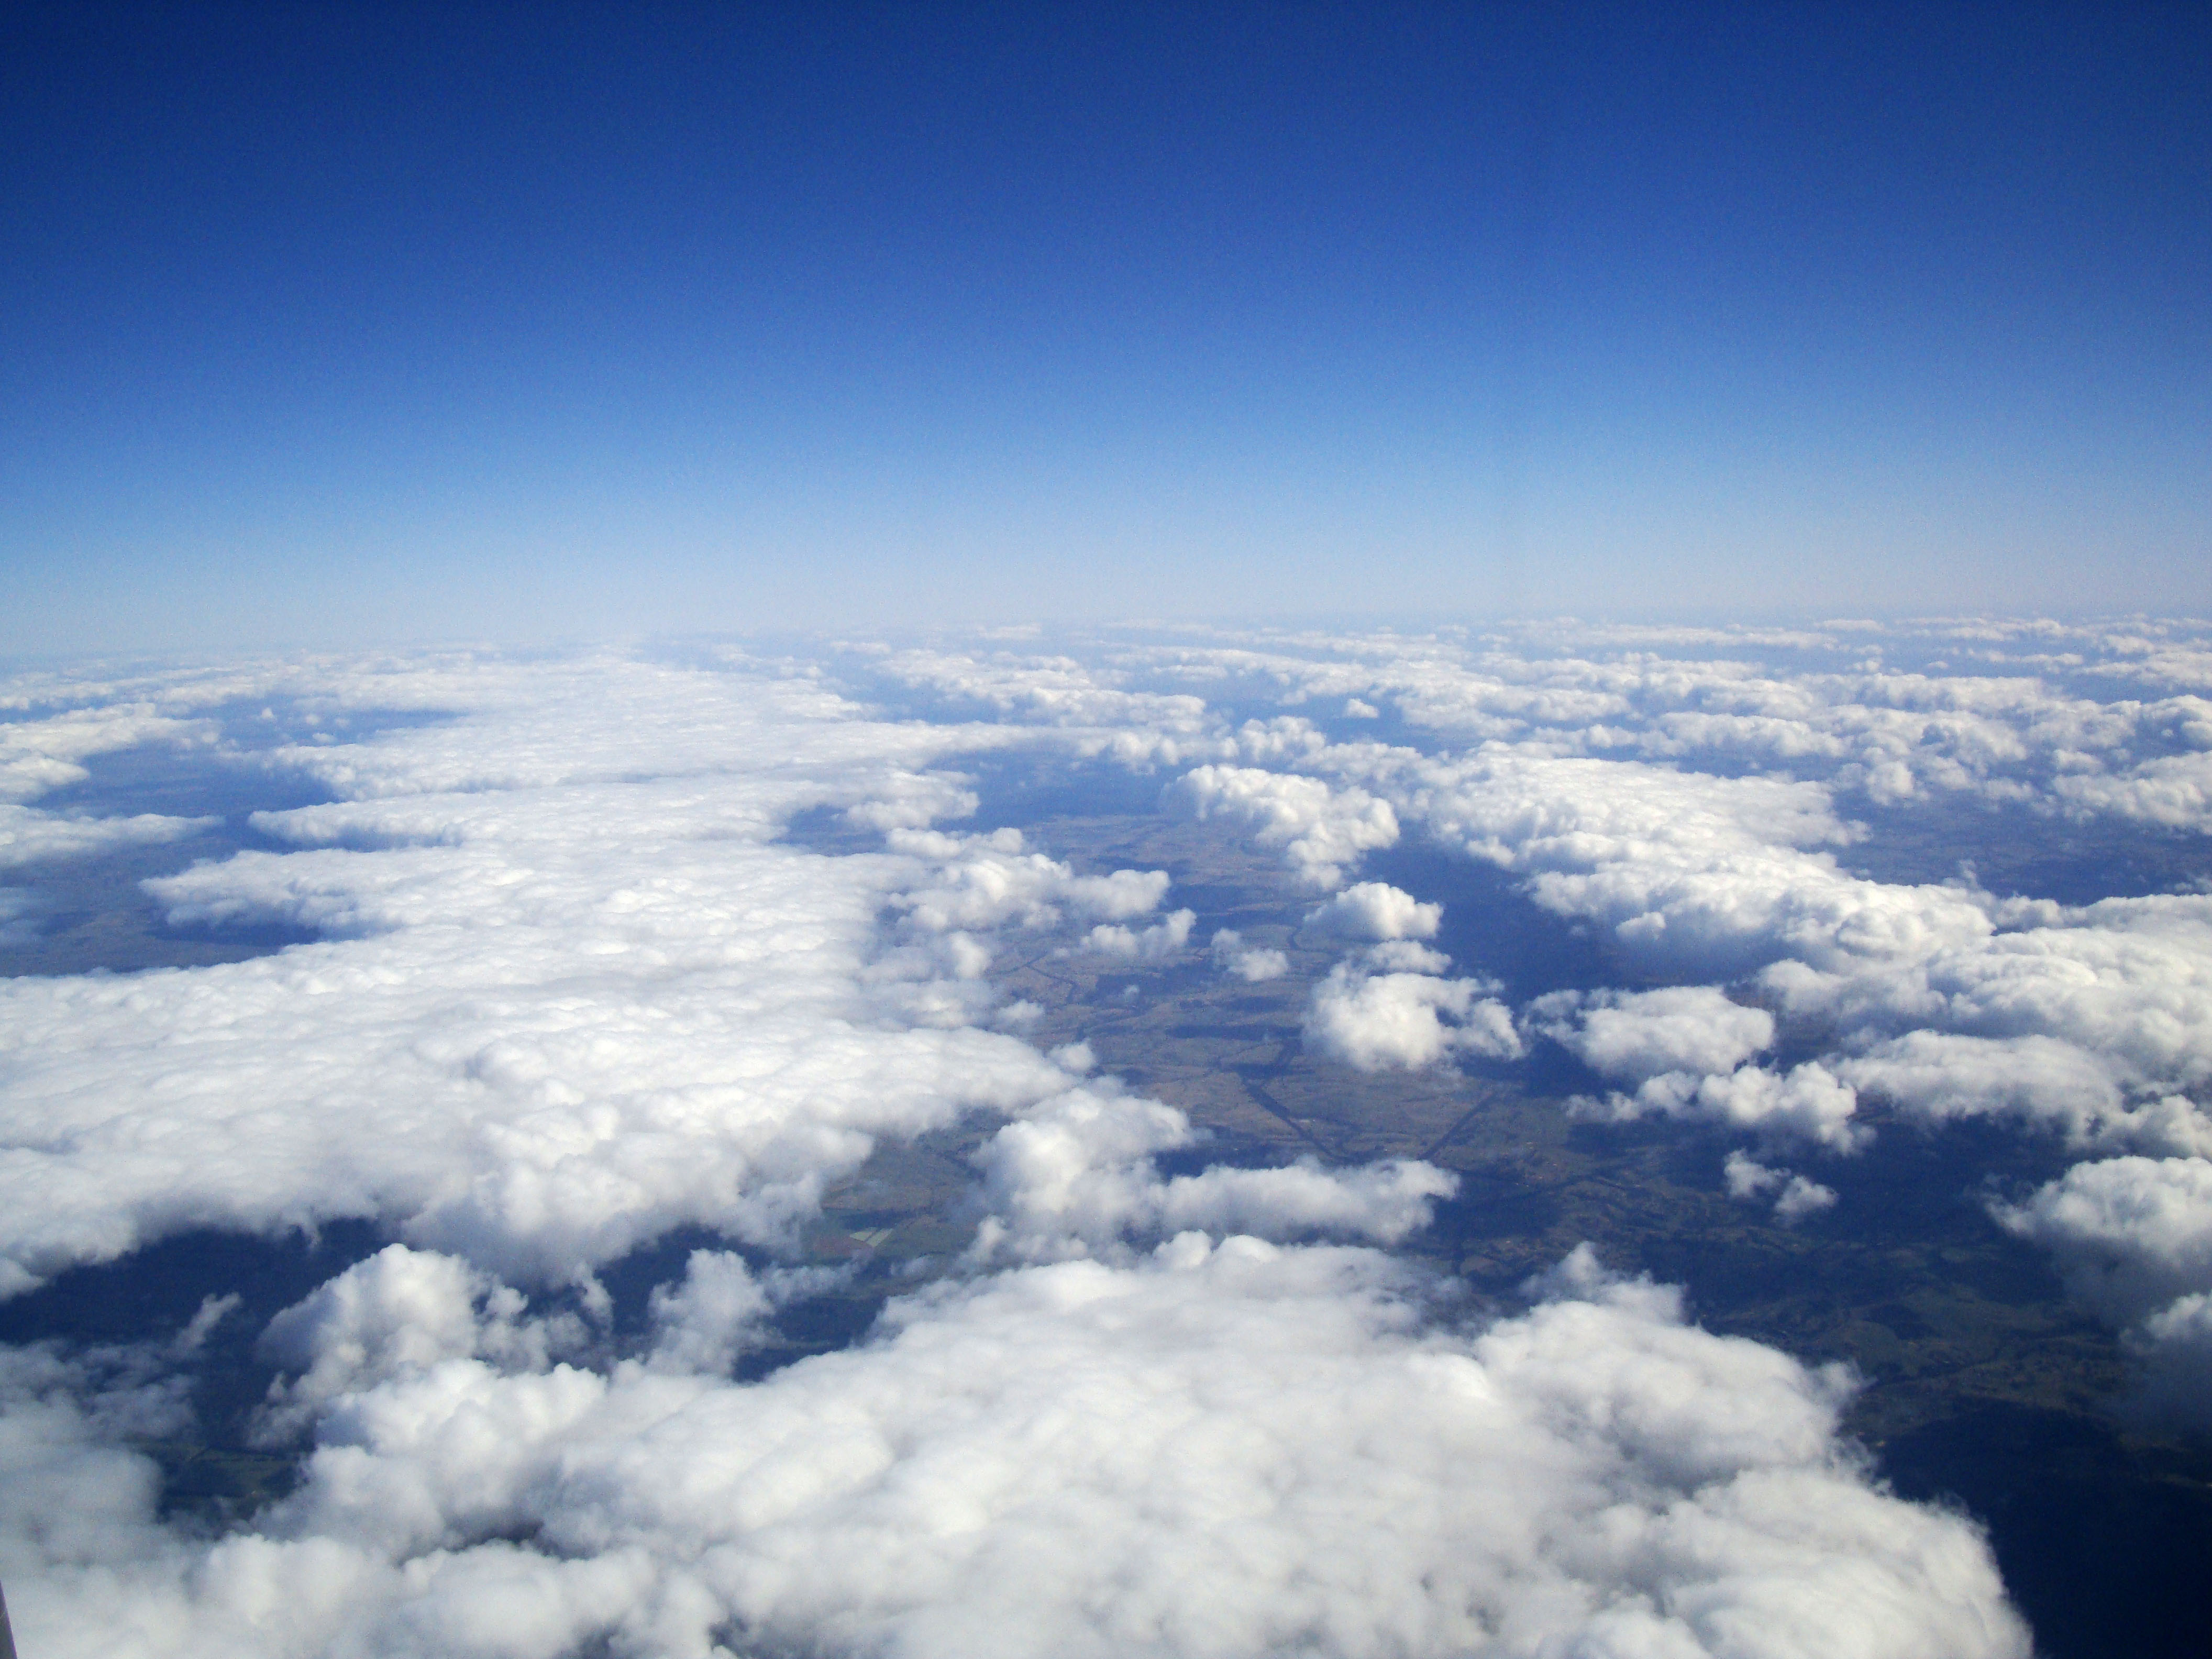 Textures Clouds Formations Sky Storms Weather Phenomena Aerial Views 05